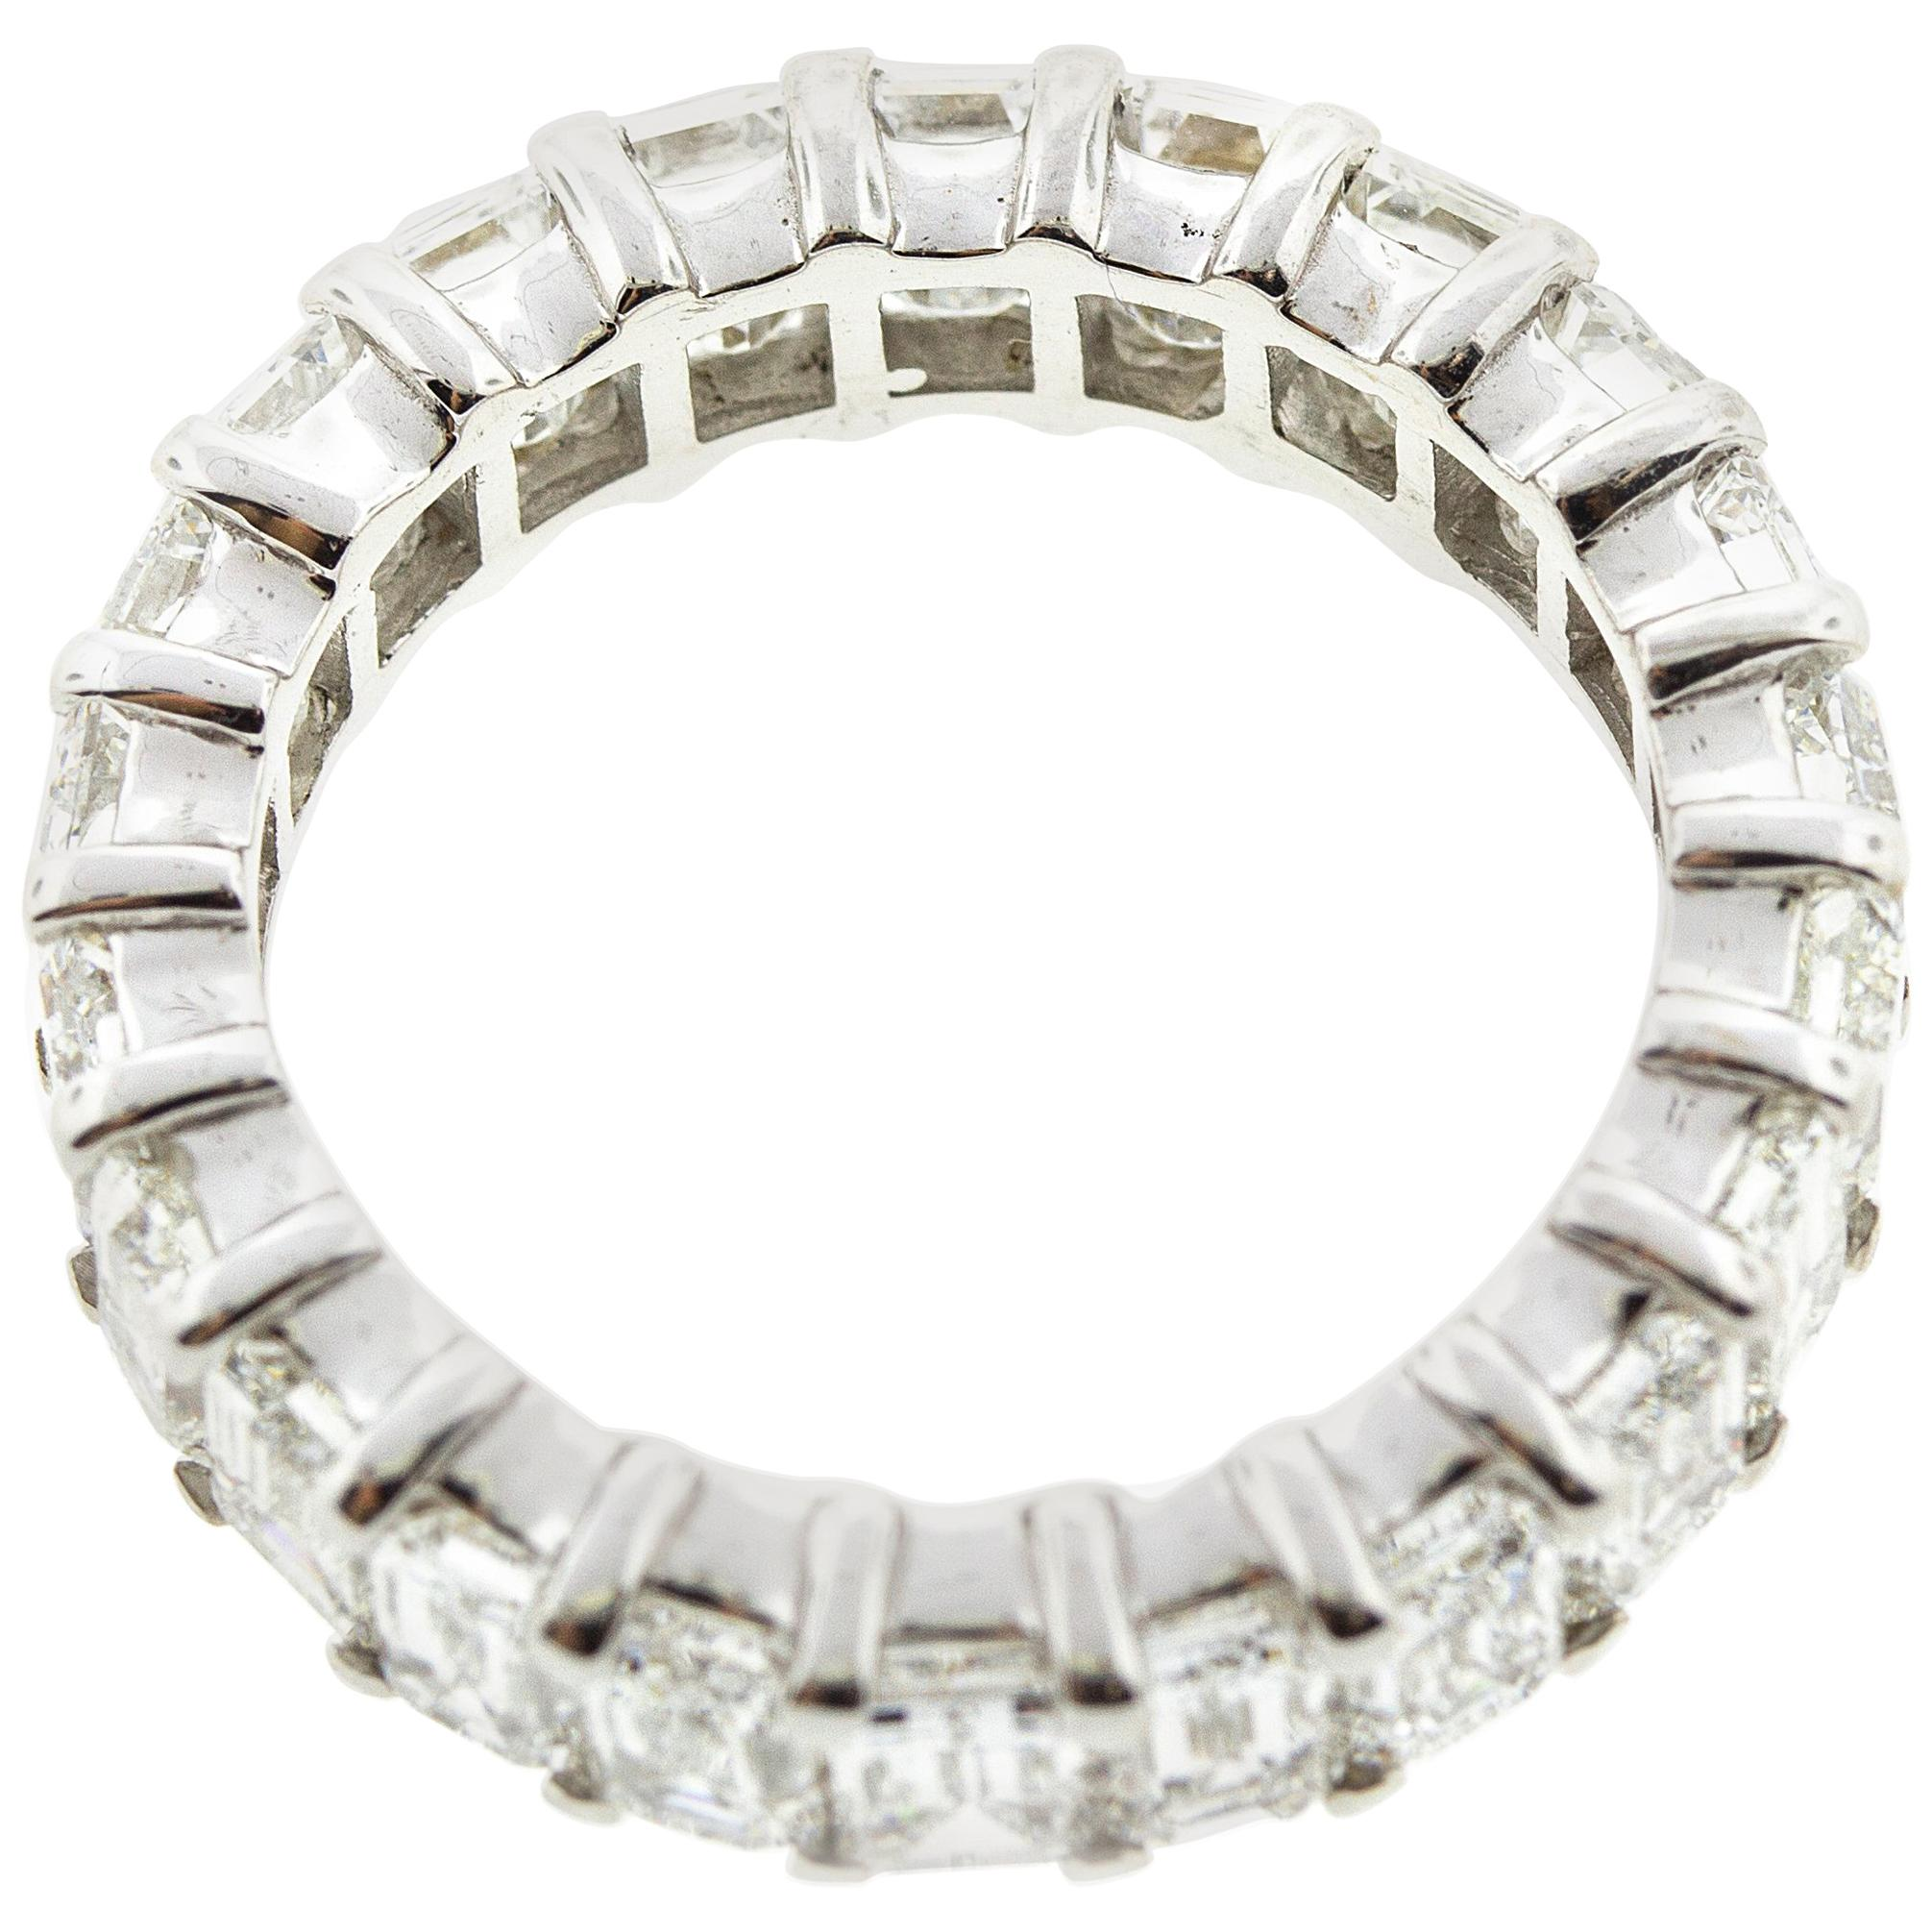 Emerald Cut Diamond Eternity Band 6.65 Carat